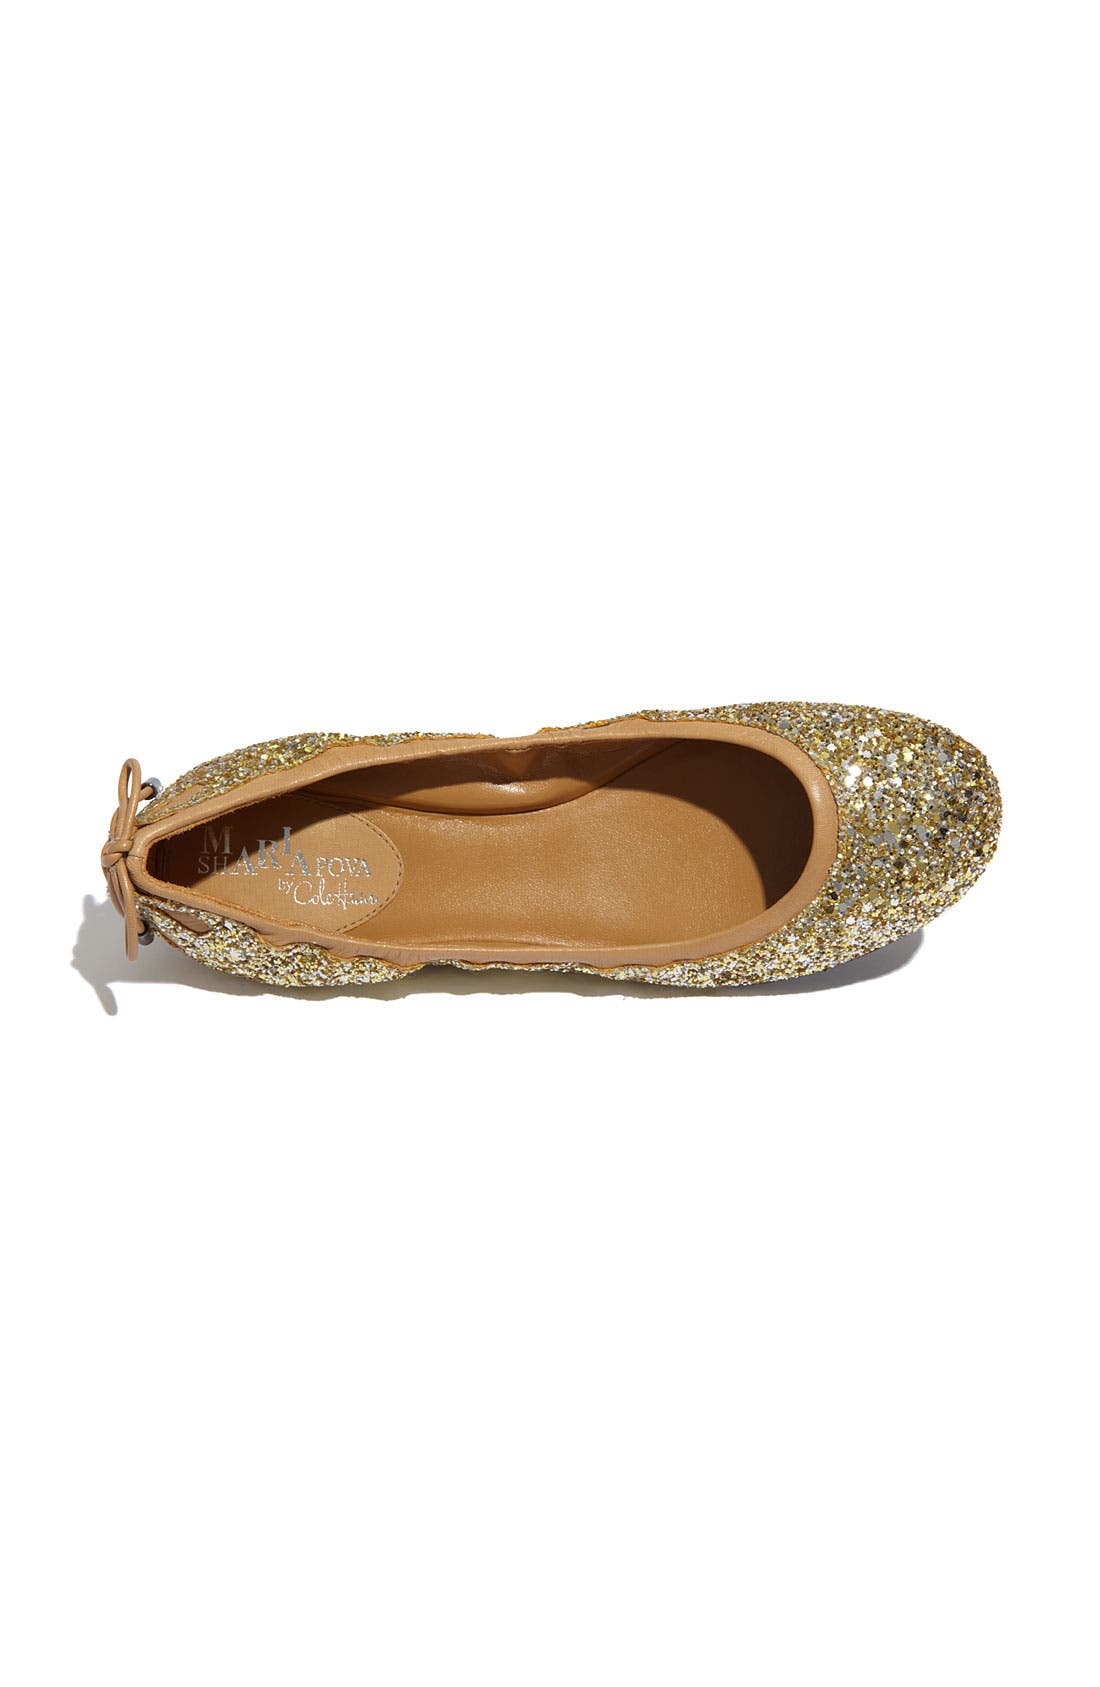 Alternate Image 3  - Maria Sharapova by Cole Haan 'Air Bacara' Ballet Flat